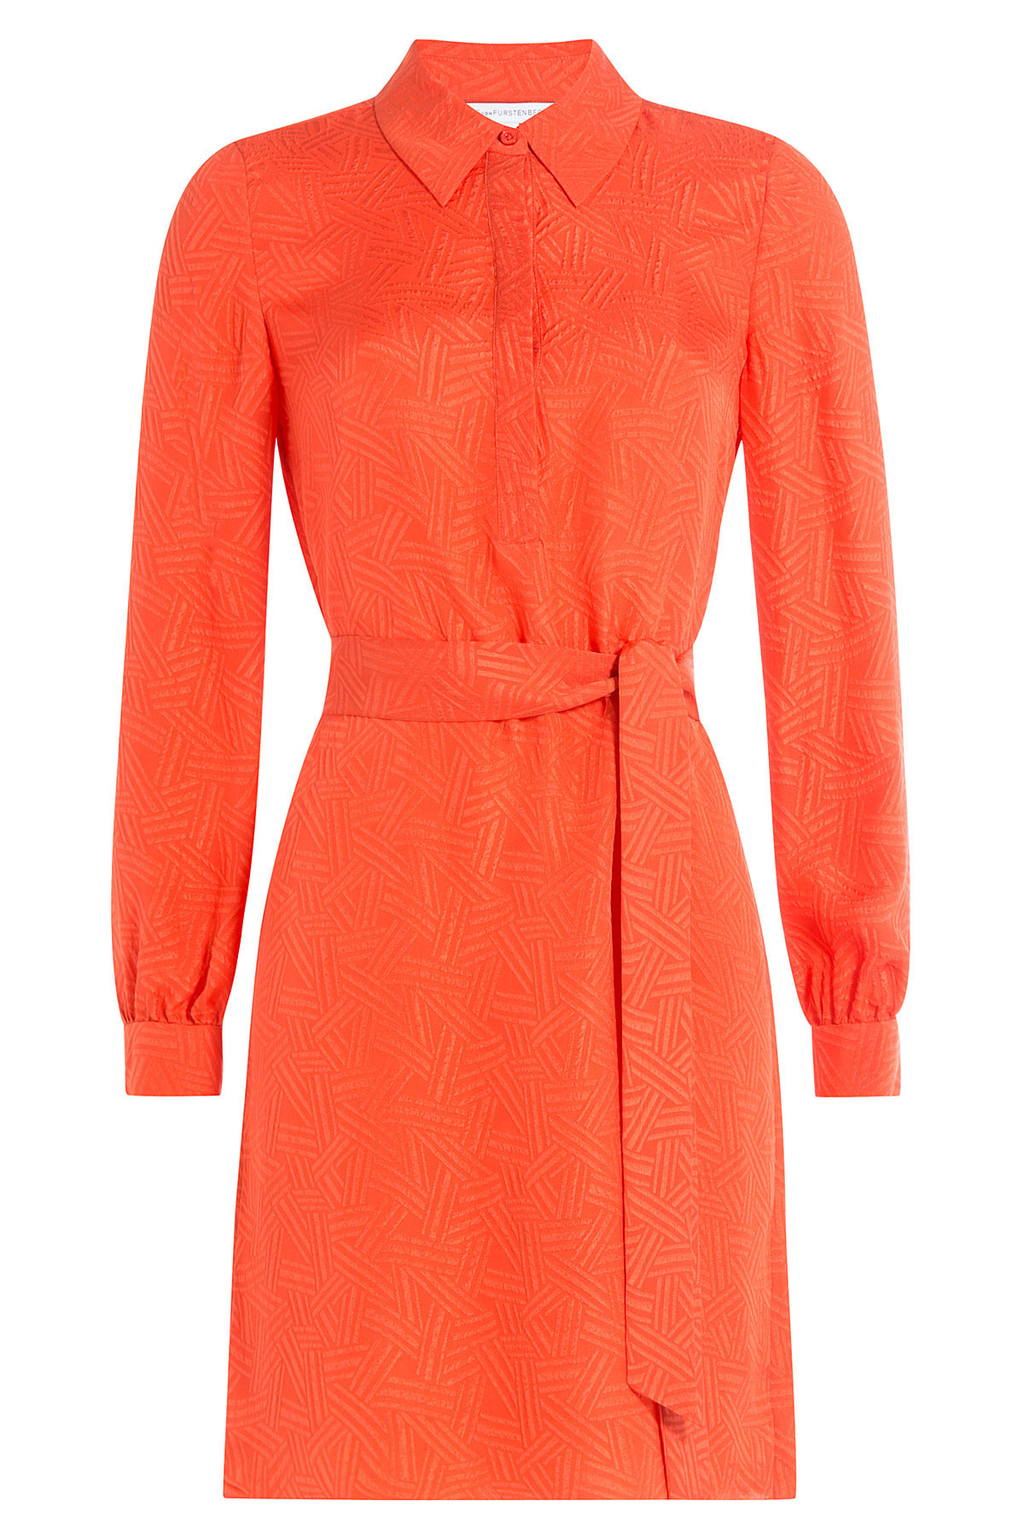 Silk Dress Orange - style: shirt; neckline: shirt collar/peter pan/zip with opening; pattern: plain; waist detail: belted waist/tie at waist/drawstring; predominant colour: bright orange; occasions: evening; length: just above the knee; fit: body skimming; fibres: silk - 100%; sleeve length: long sleeve; sleeve style: standard; texture group: silky - light; pattern type: fabric; season: s/s 2016; wardrobe: event